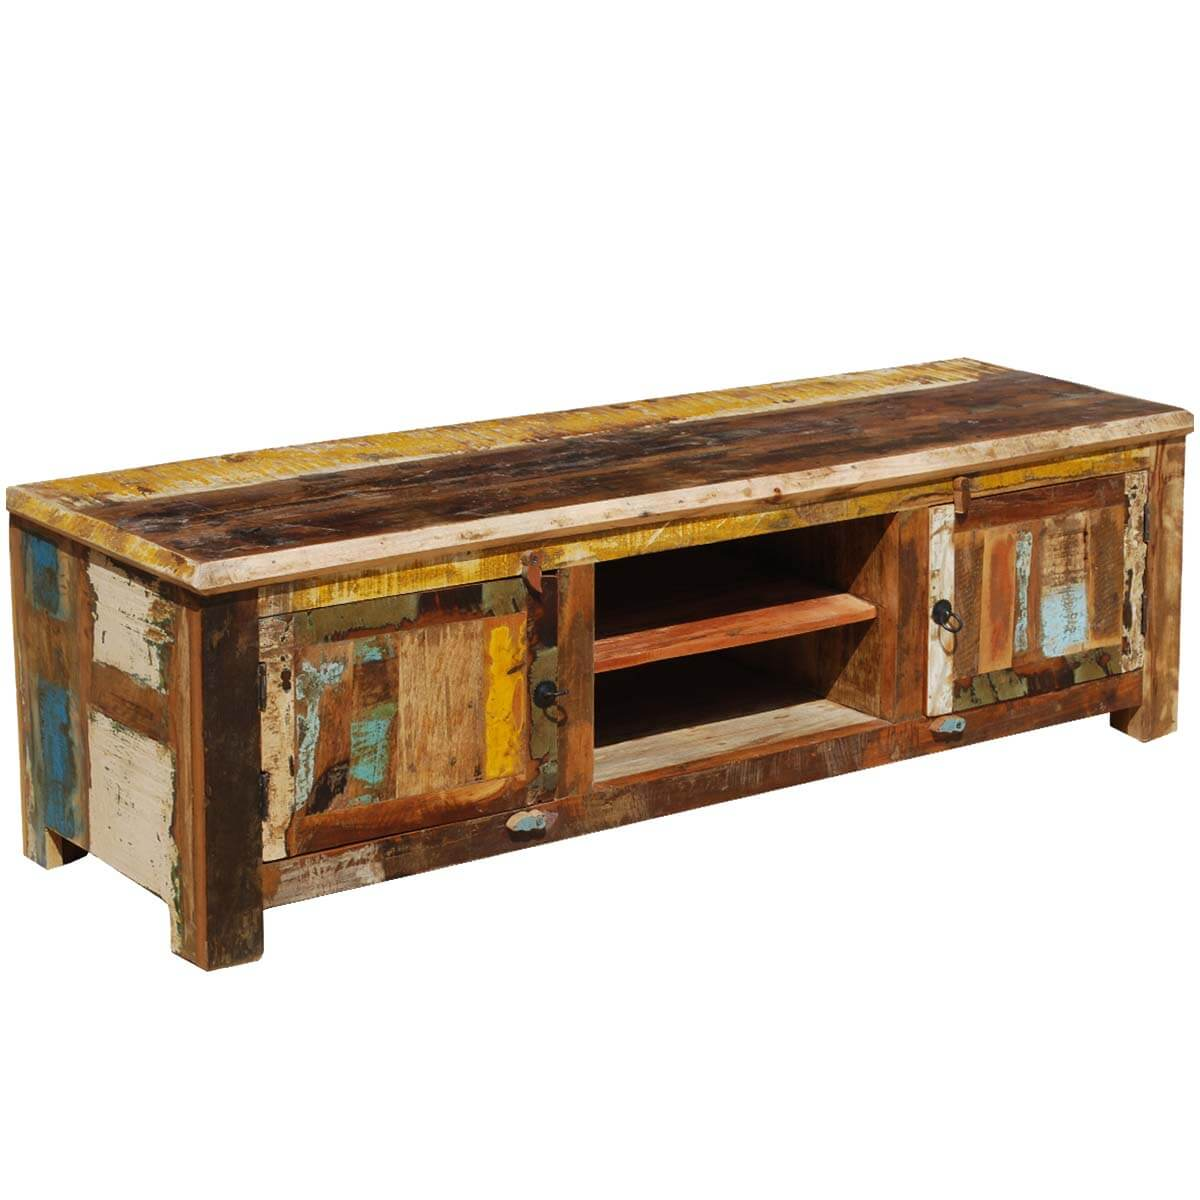 Appalachian Rustic Old Wood Double Door TV Media Console